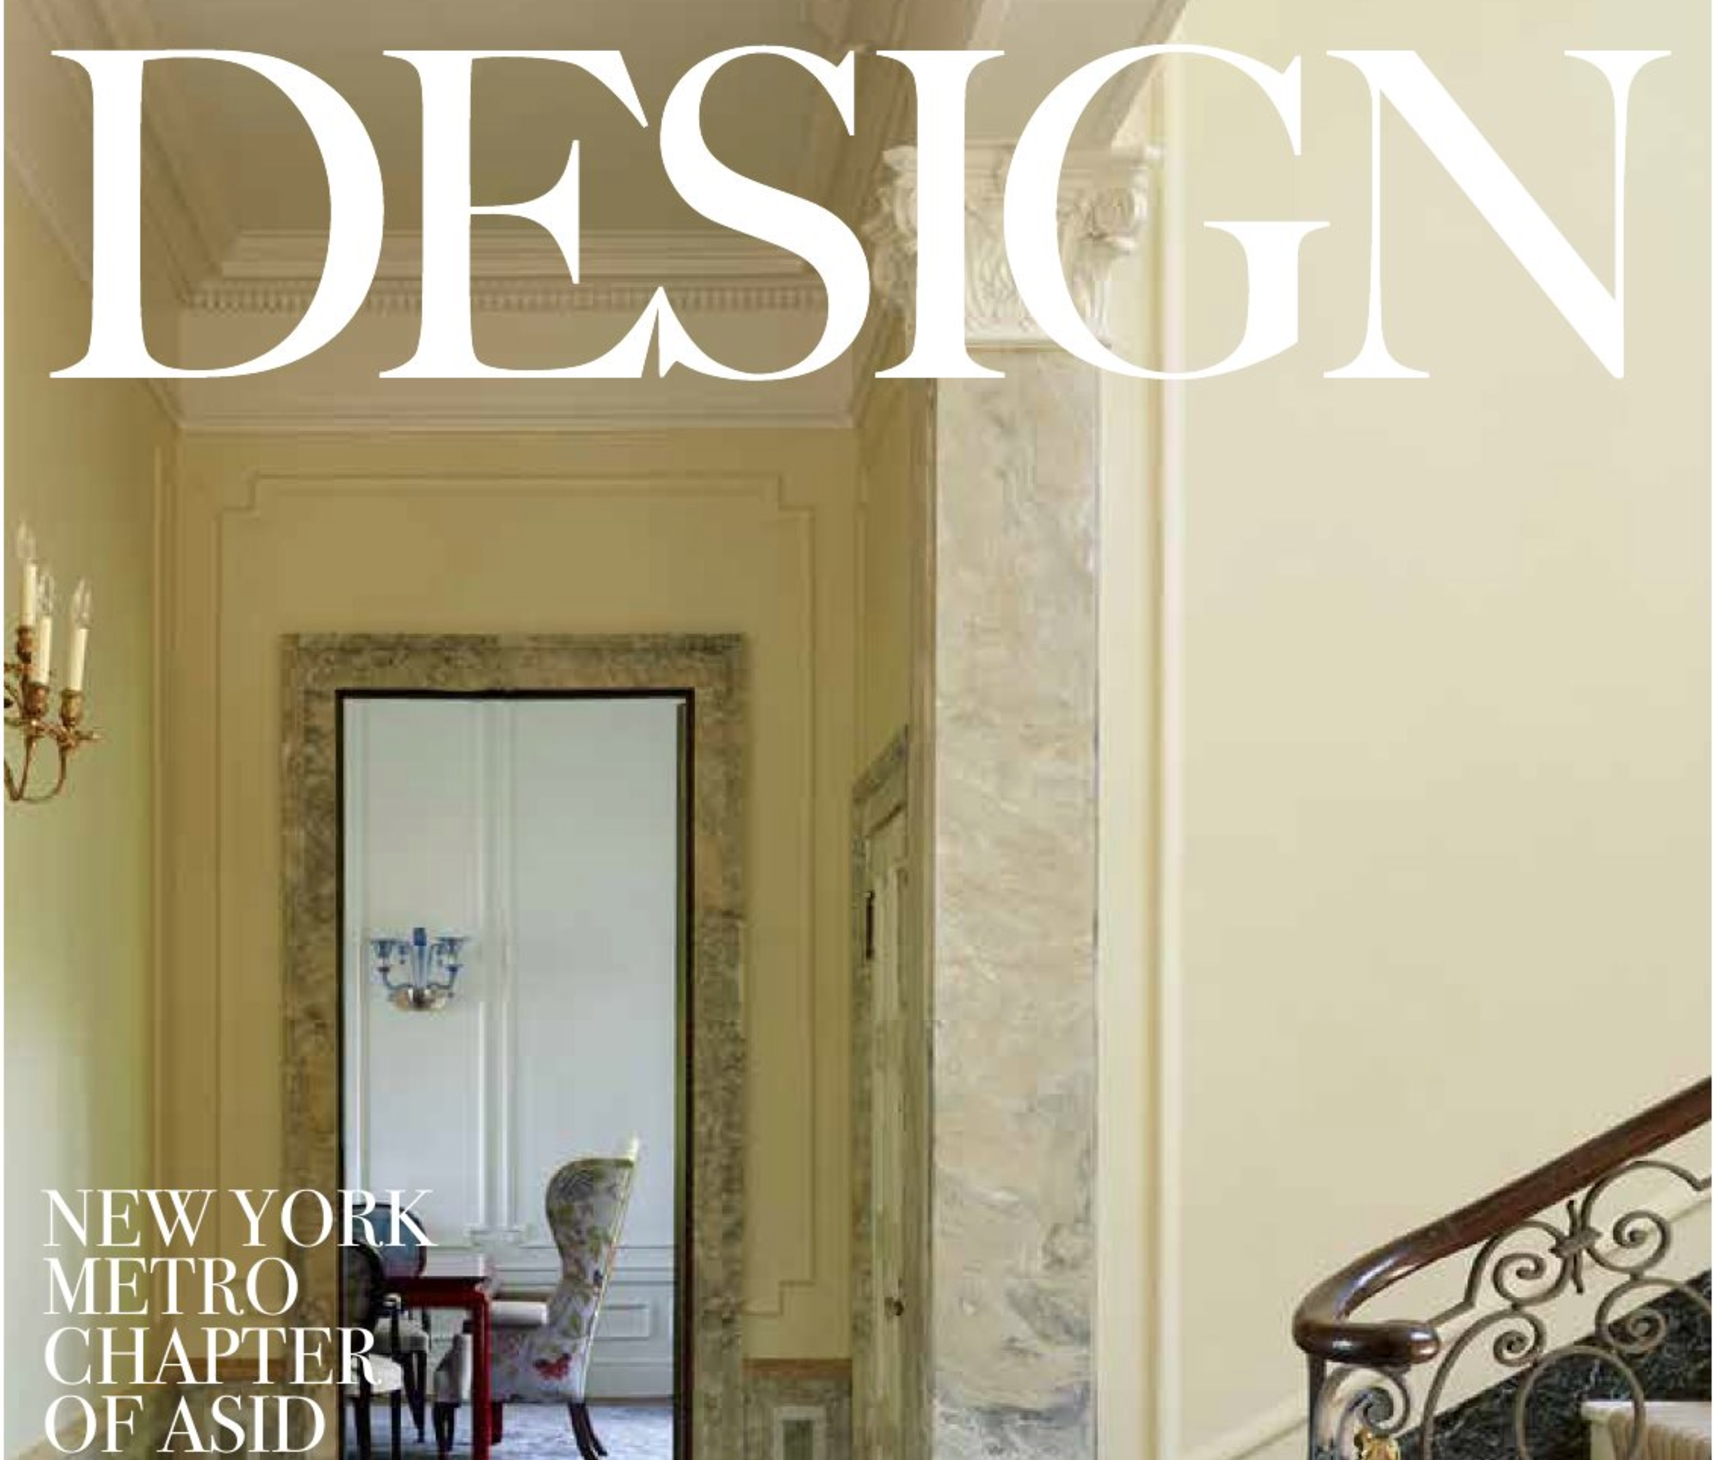 The American Society Of Interior Designers Believes That Design Transforms Lives ASID Serves Full Range Profession And Practice